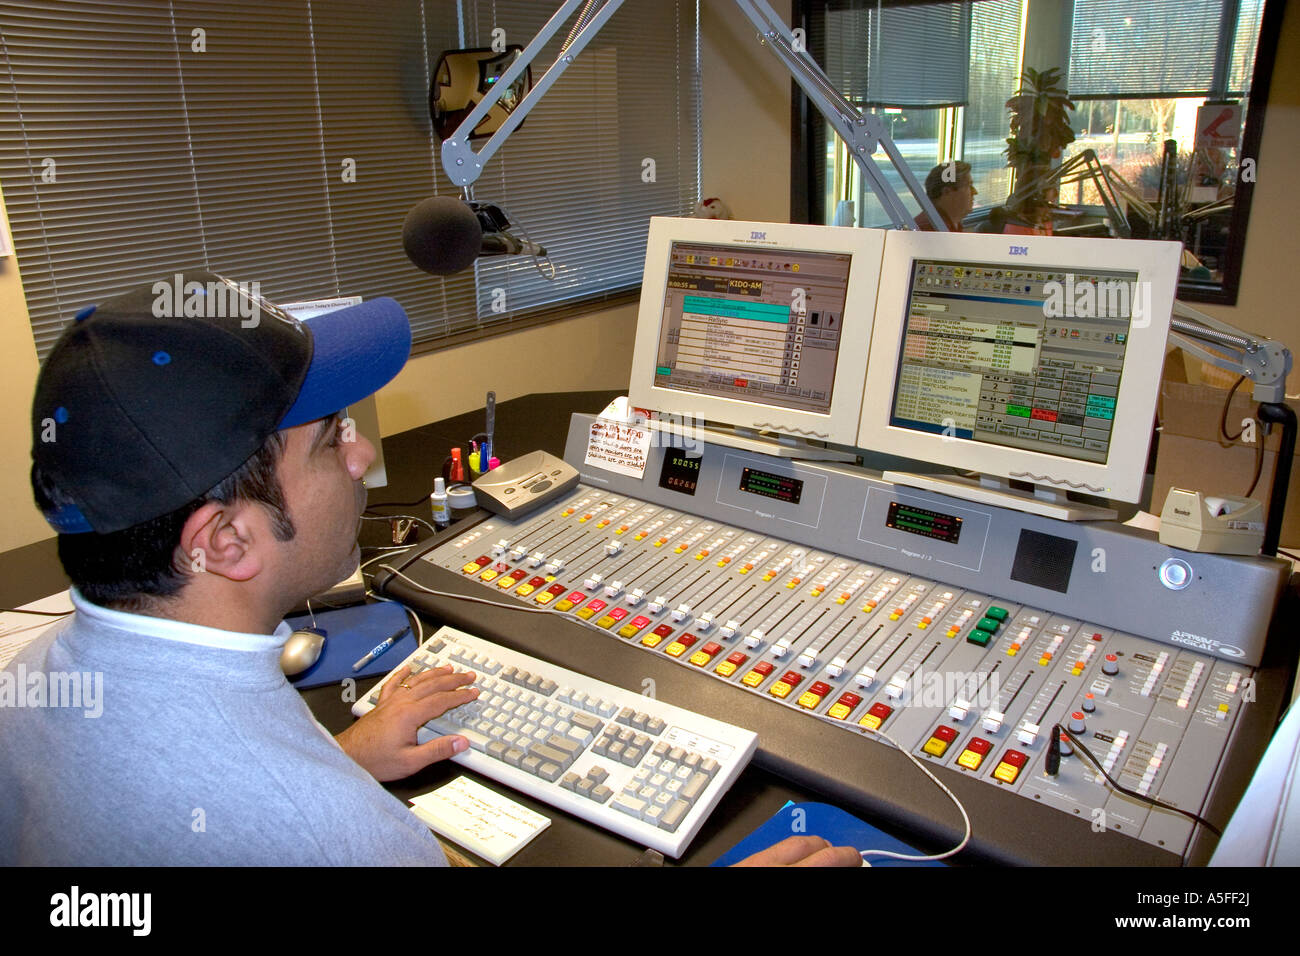 Sound engineer operating commercial broadcast radio control